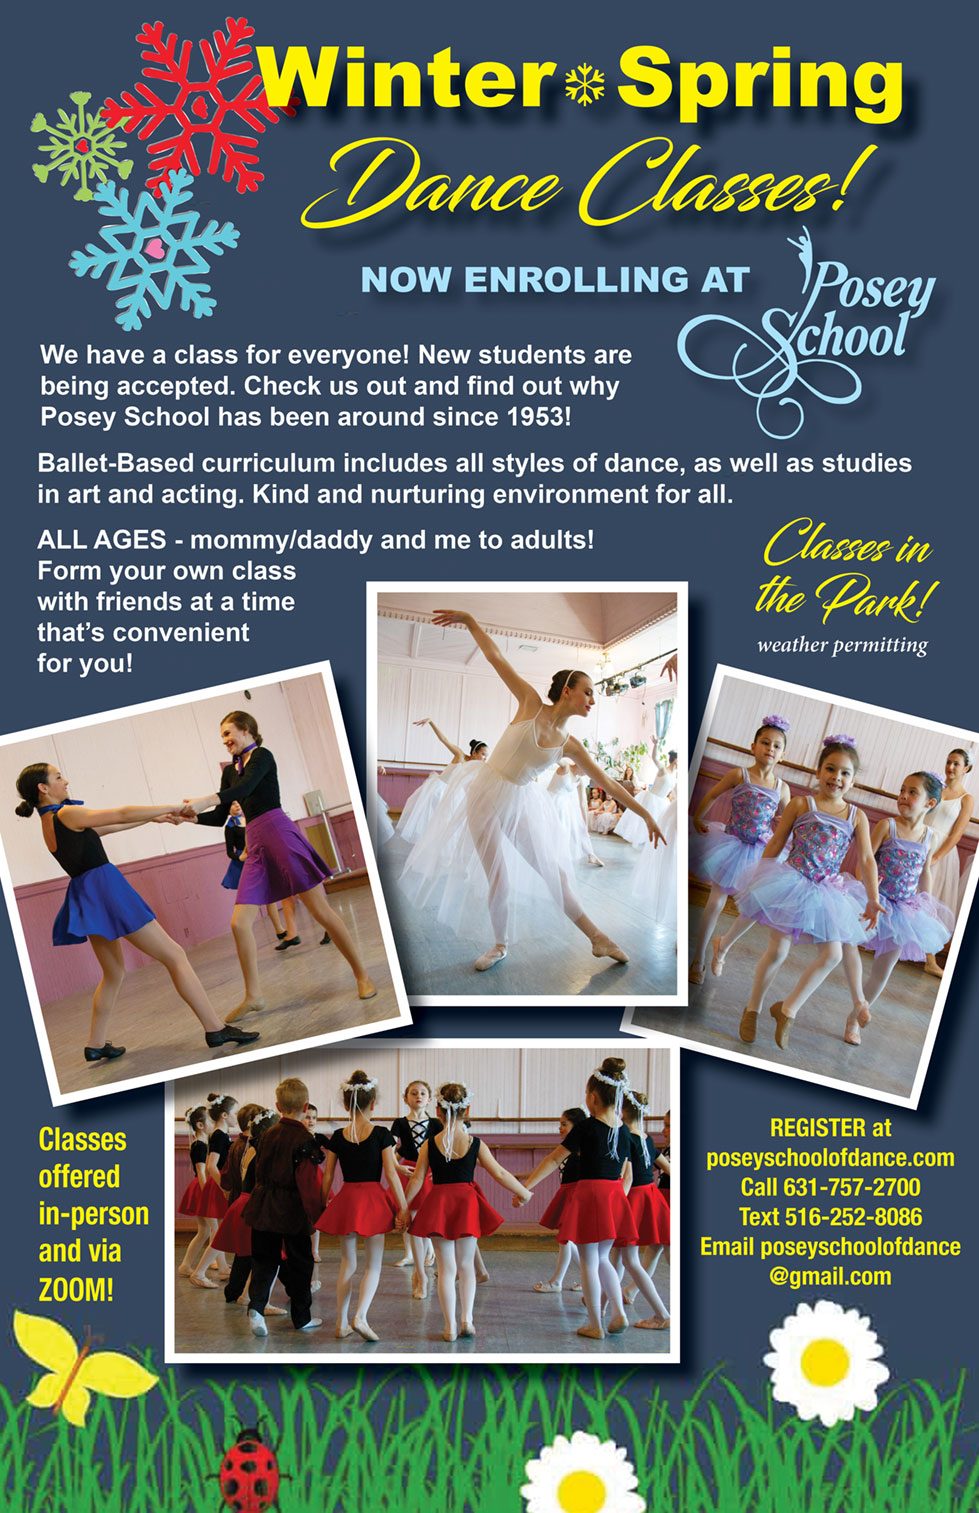 Winter & Spring Dance Classes!